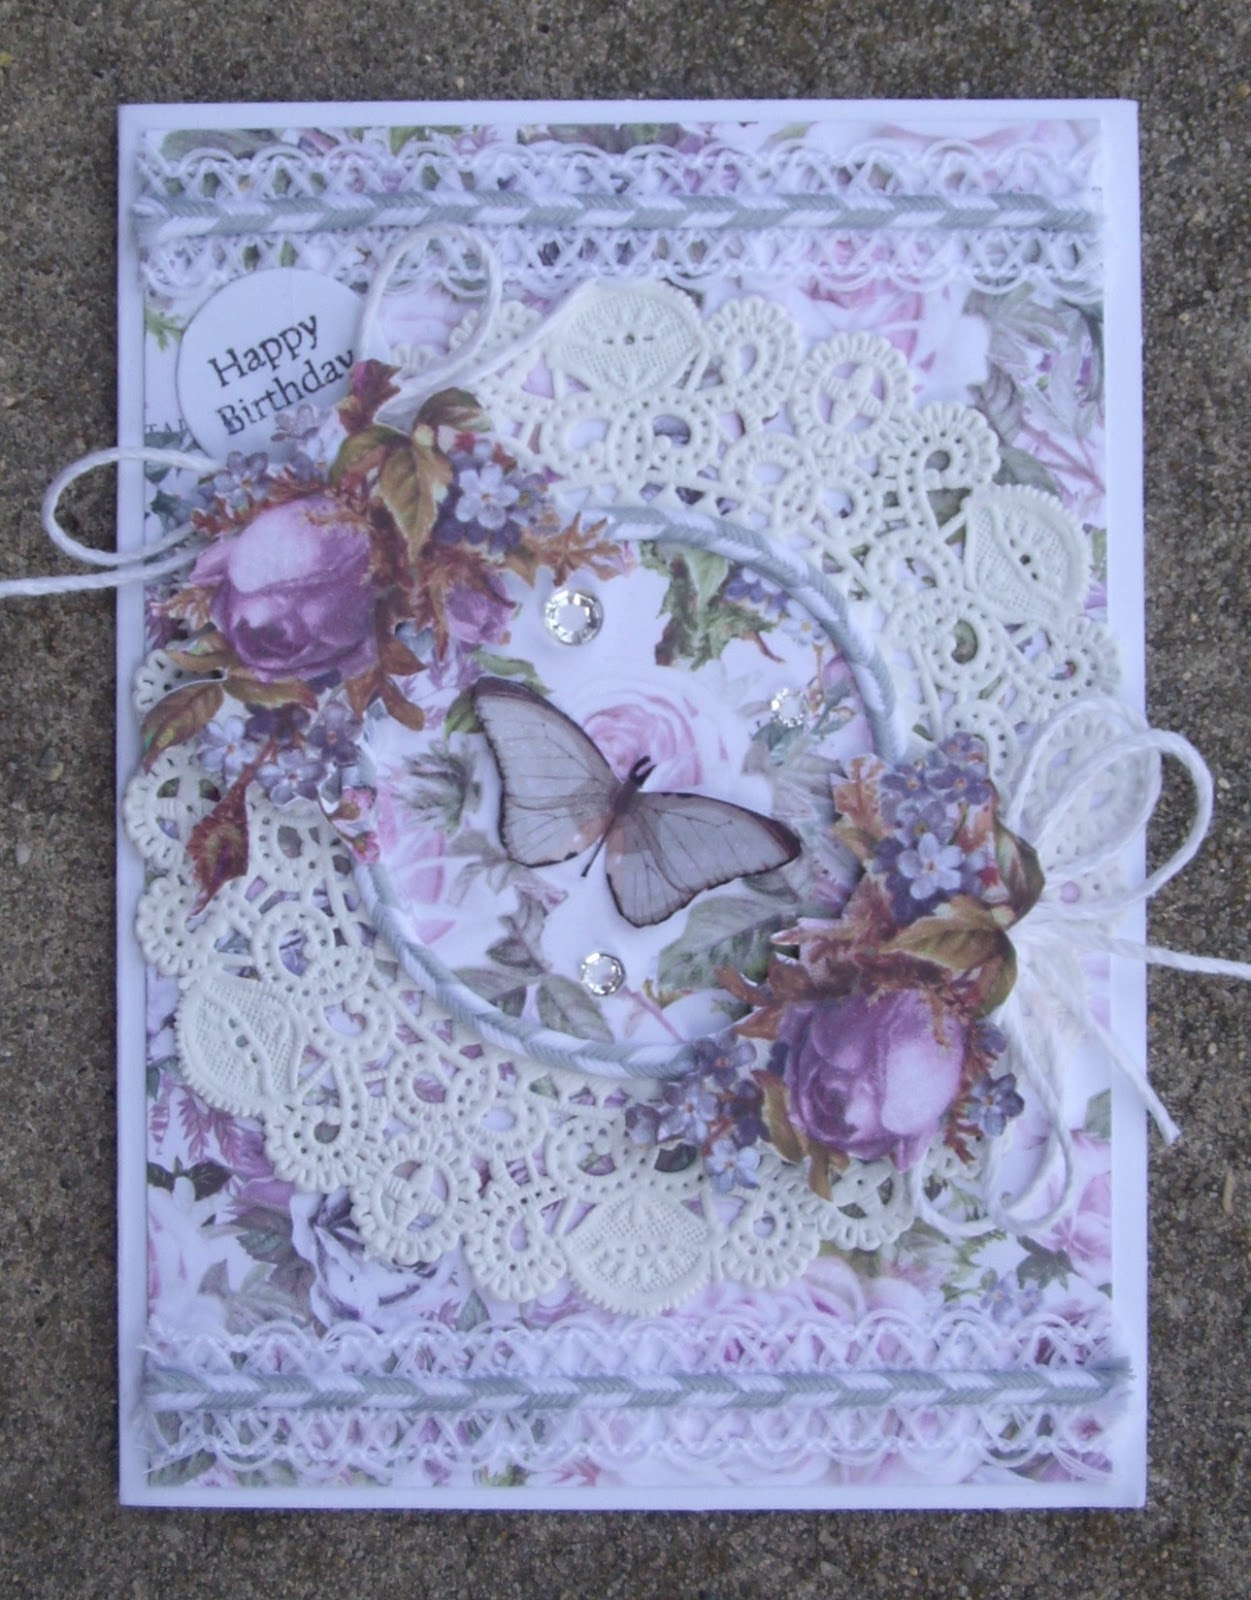 Today I Have A Birthday Card To Share Using The Lavender Collection By Prima Limited Myself Mainly Papers For Background And